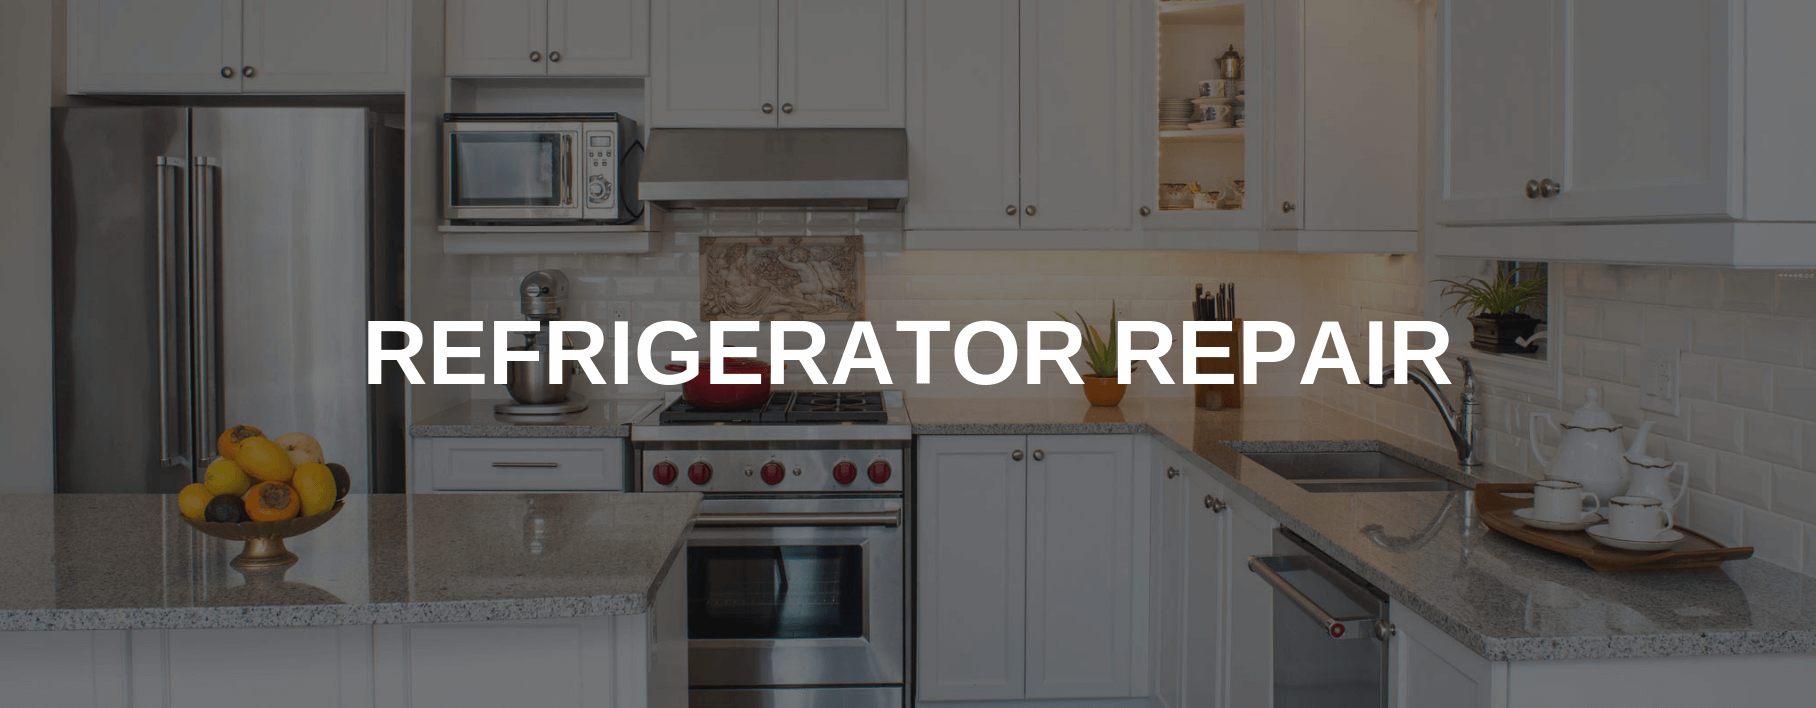 chesapeake refrigerator repair